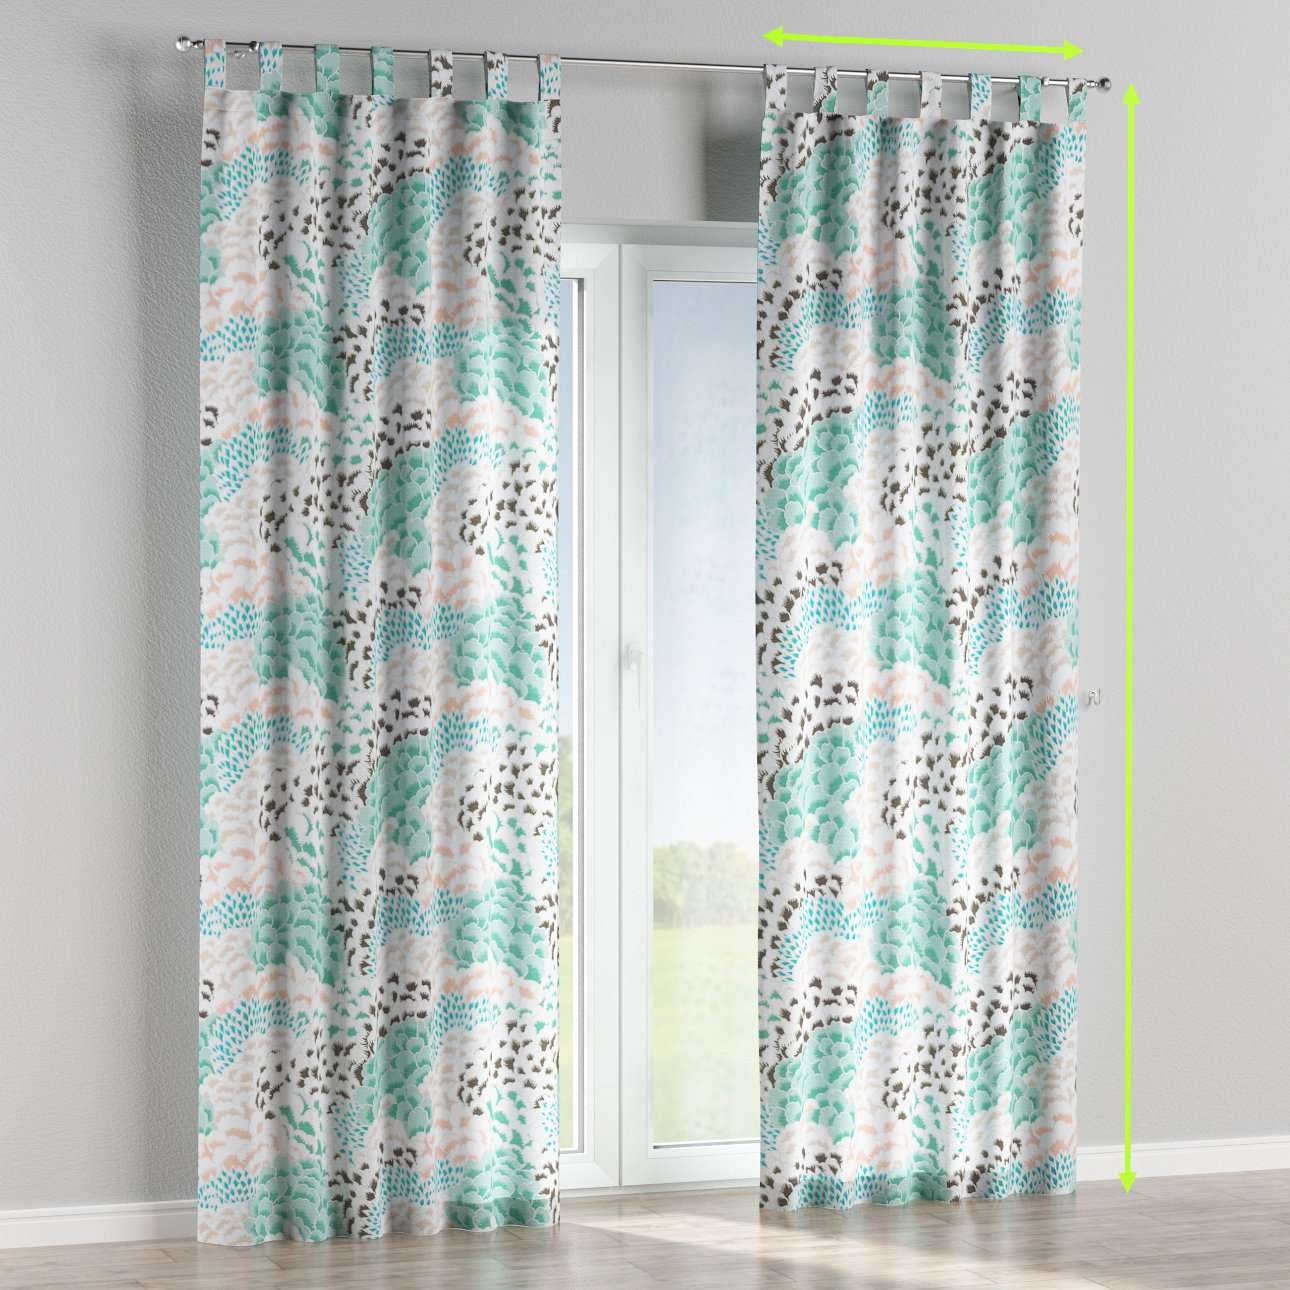 Tab top curtains in collection Brooklyn, fabric: 137-89